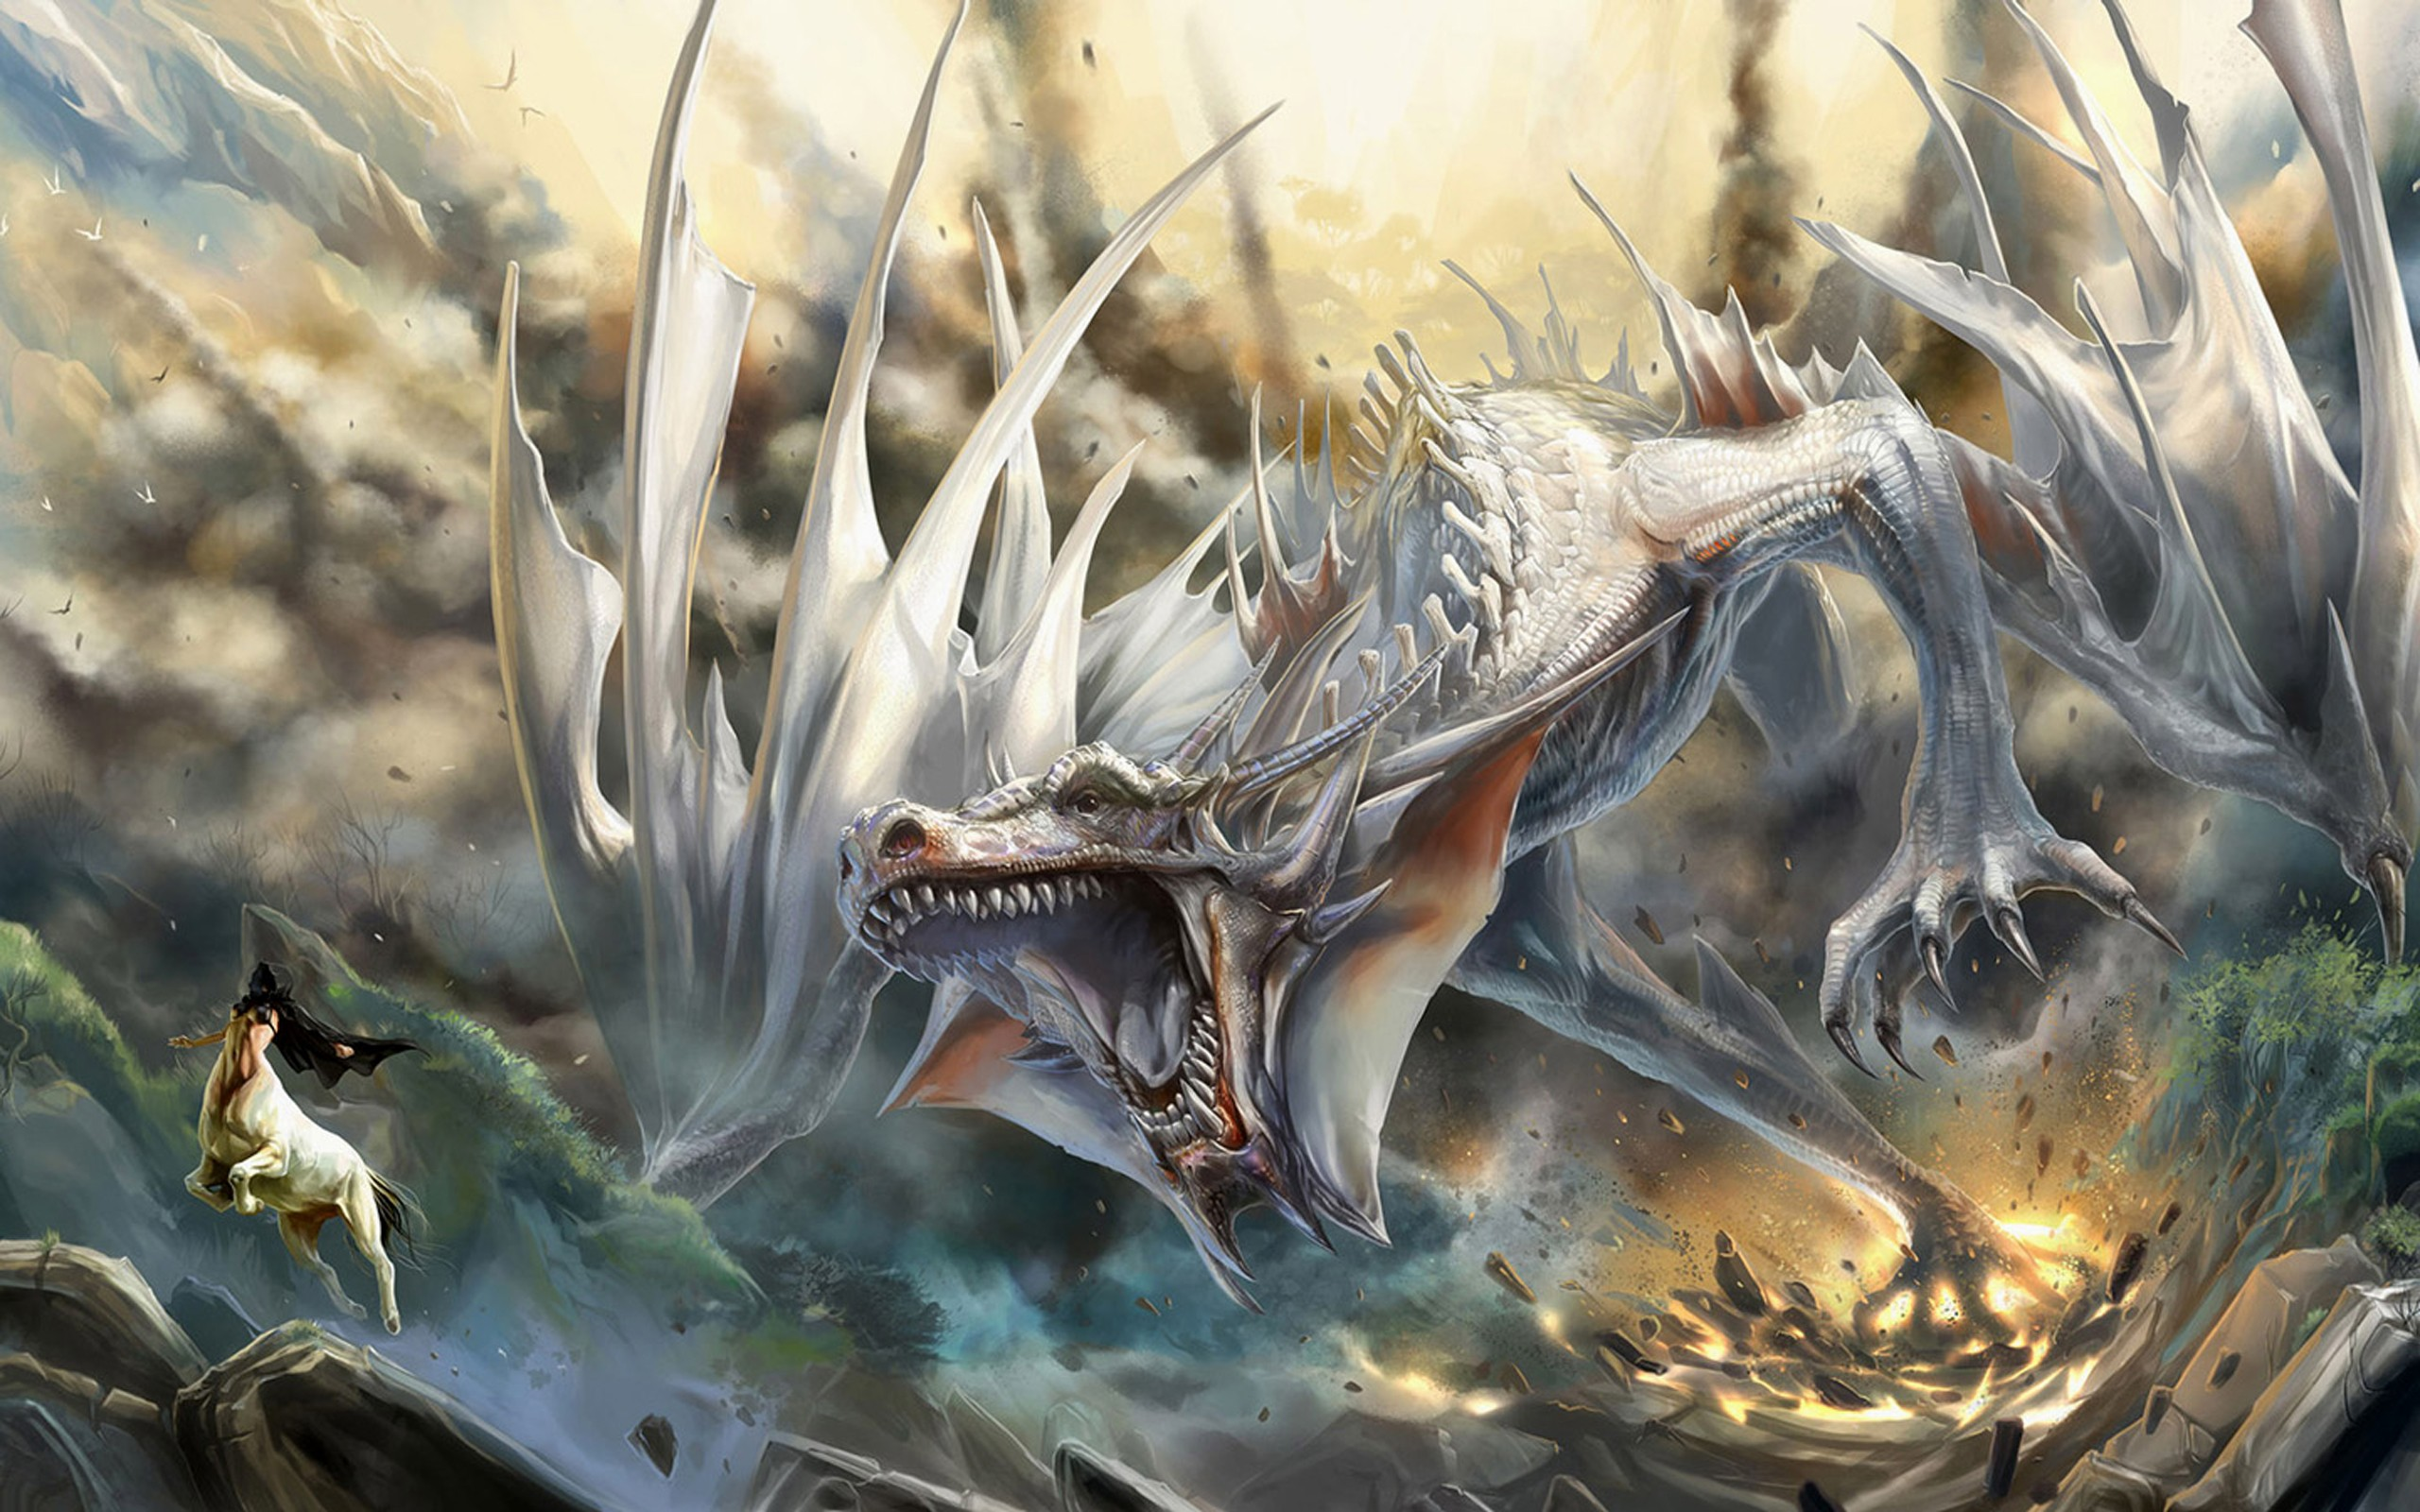 3d Dragon Wallpapers Dragons 3d wallpaper 2560x1600